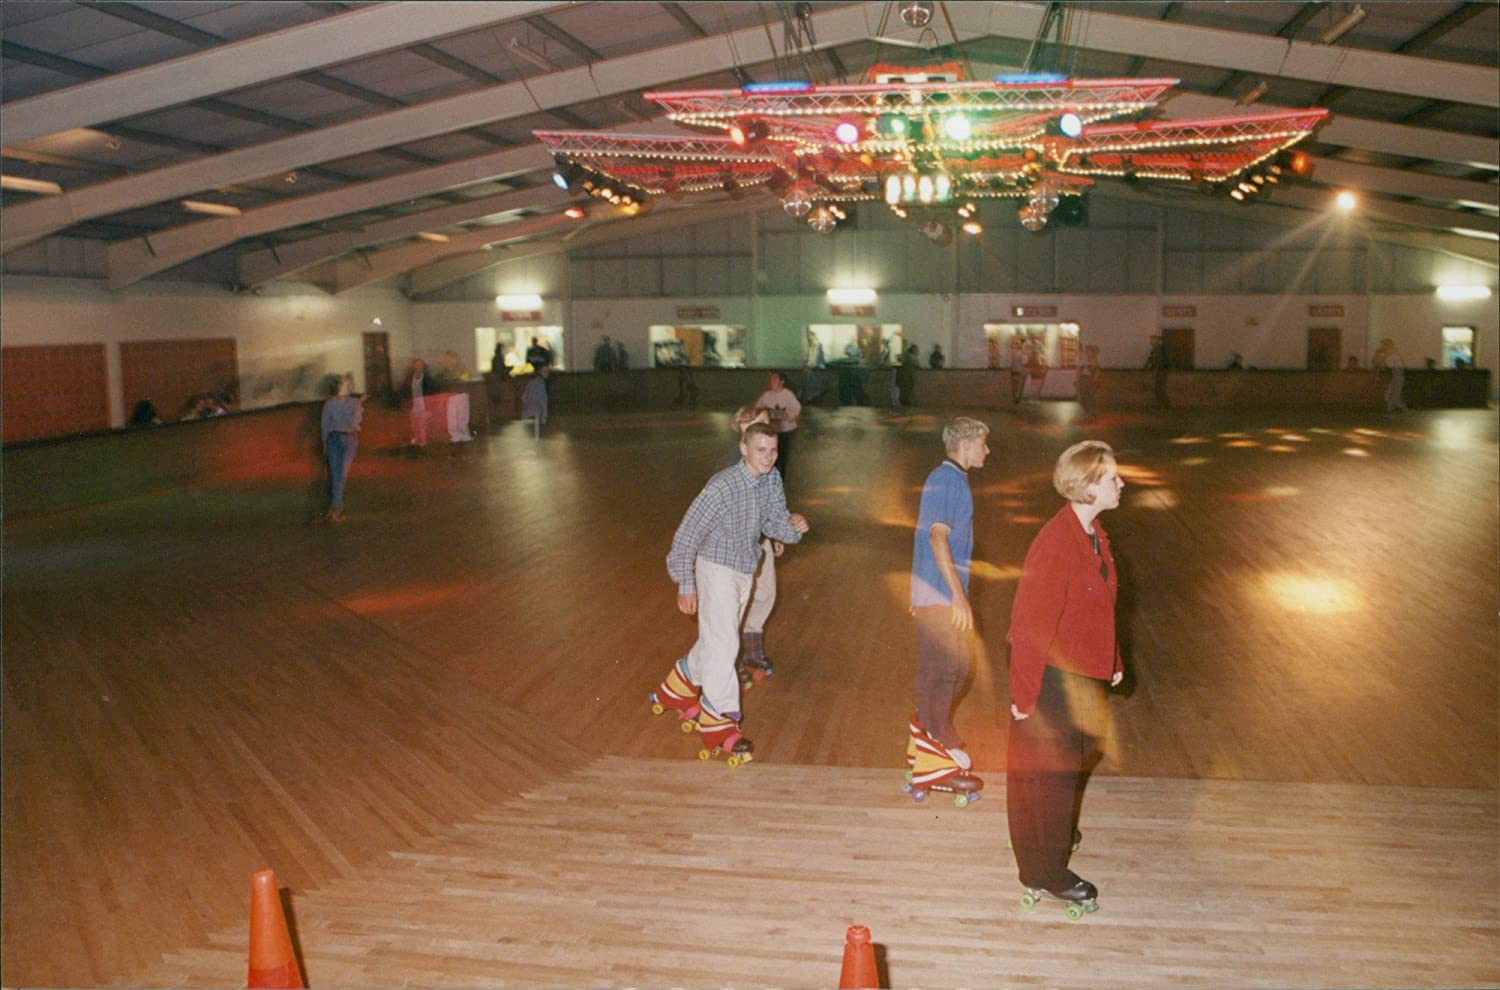 Amazon Com Vintage Photo Of Roller Skating Rink Entertainment Collectibles